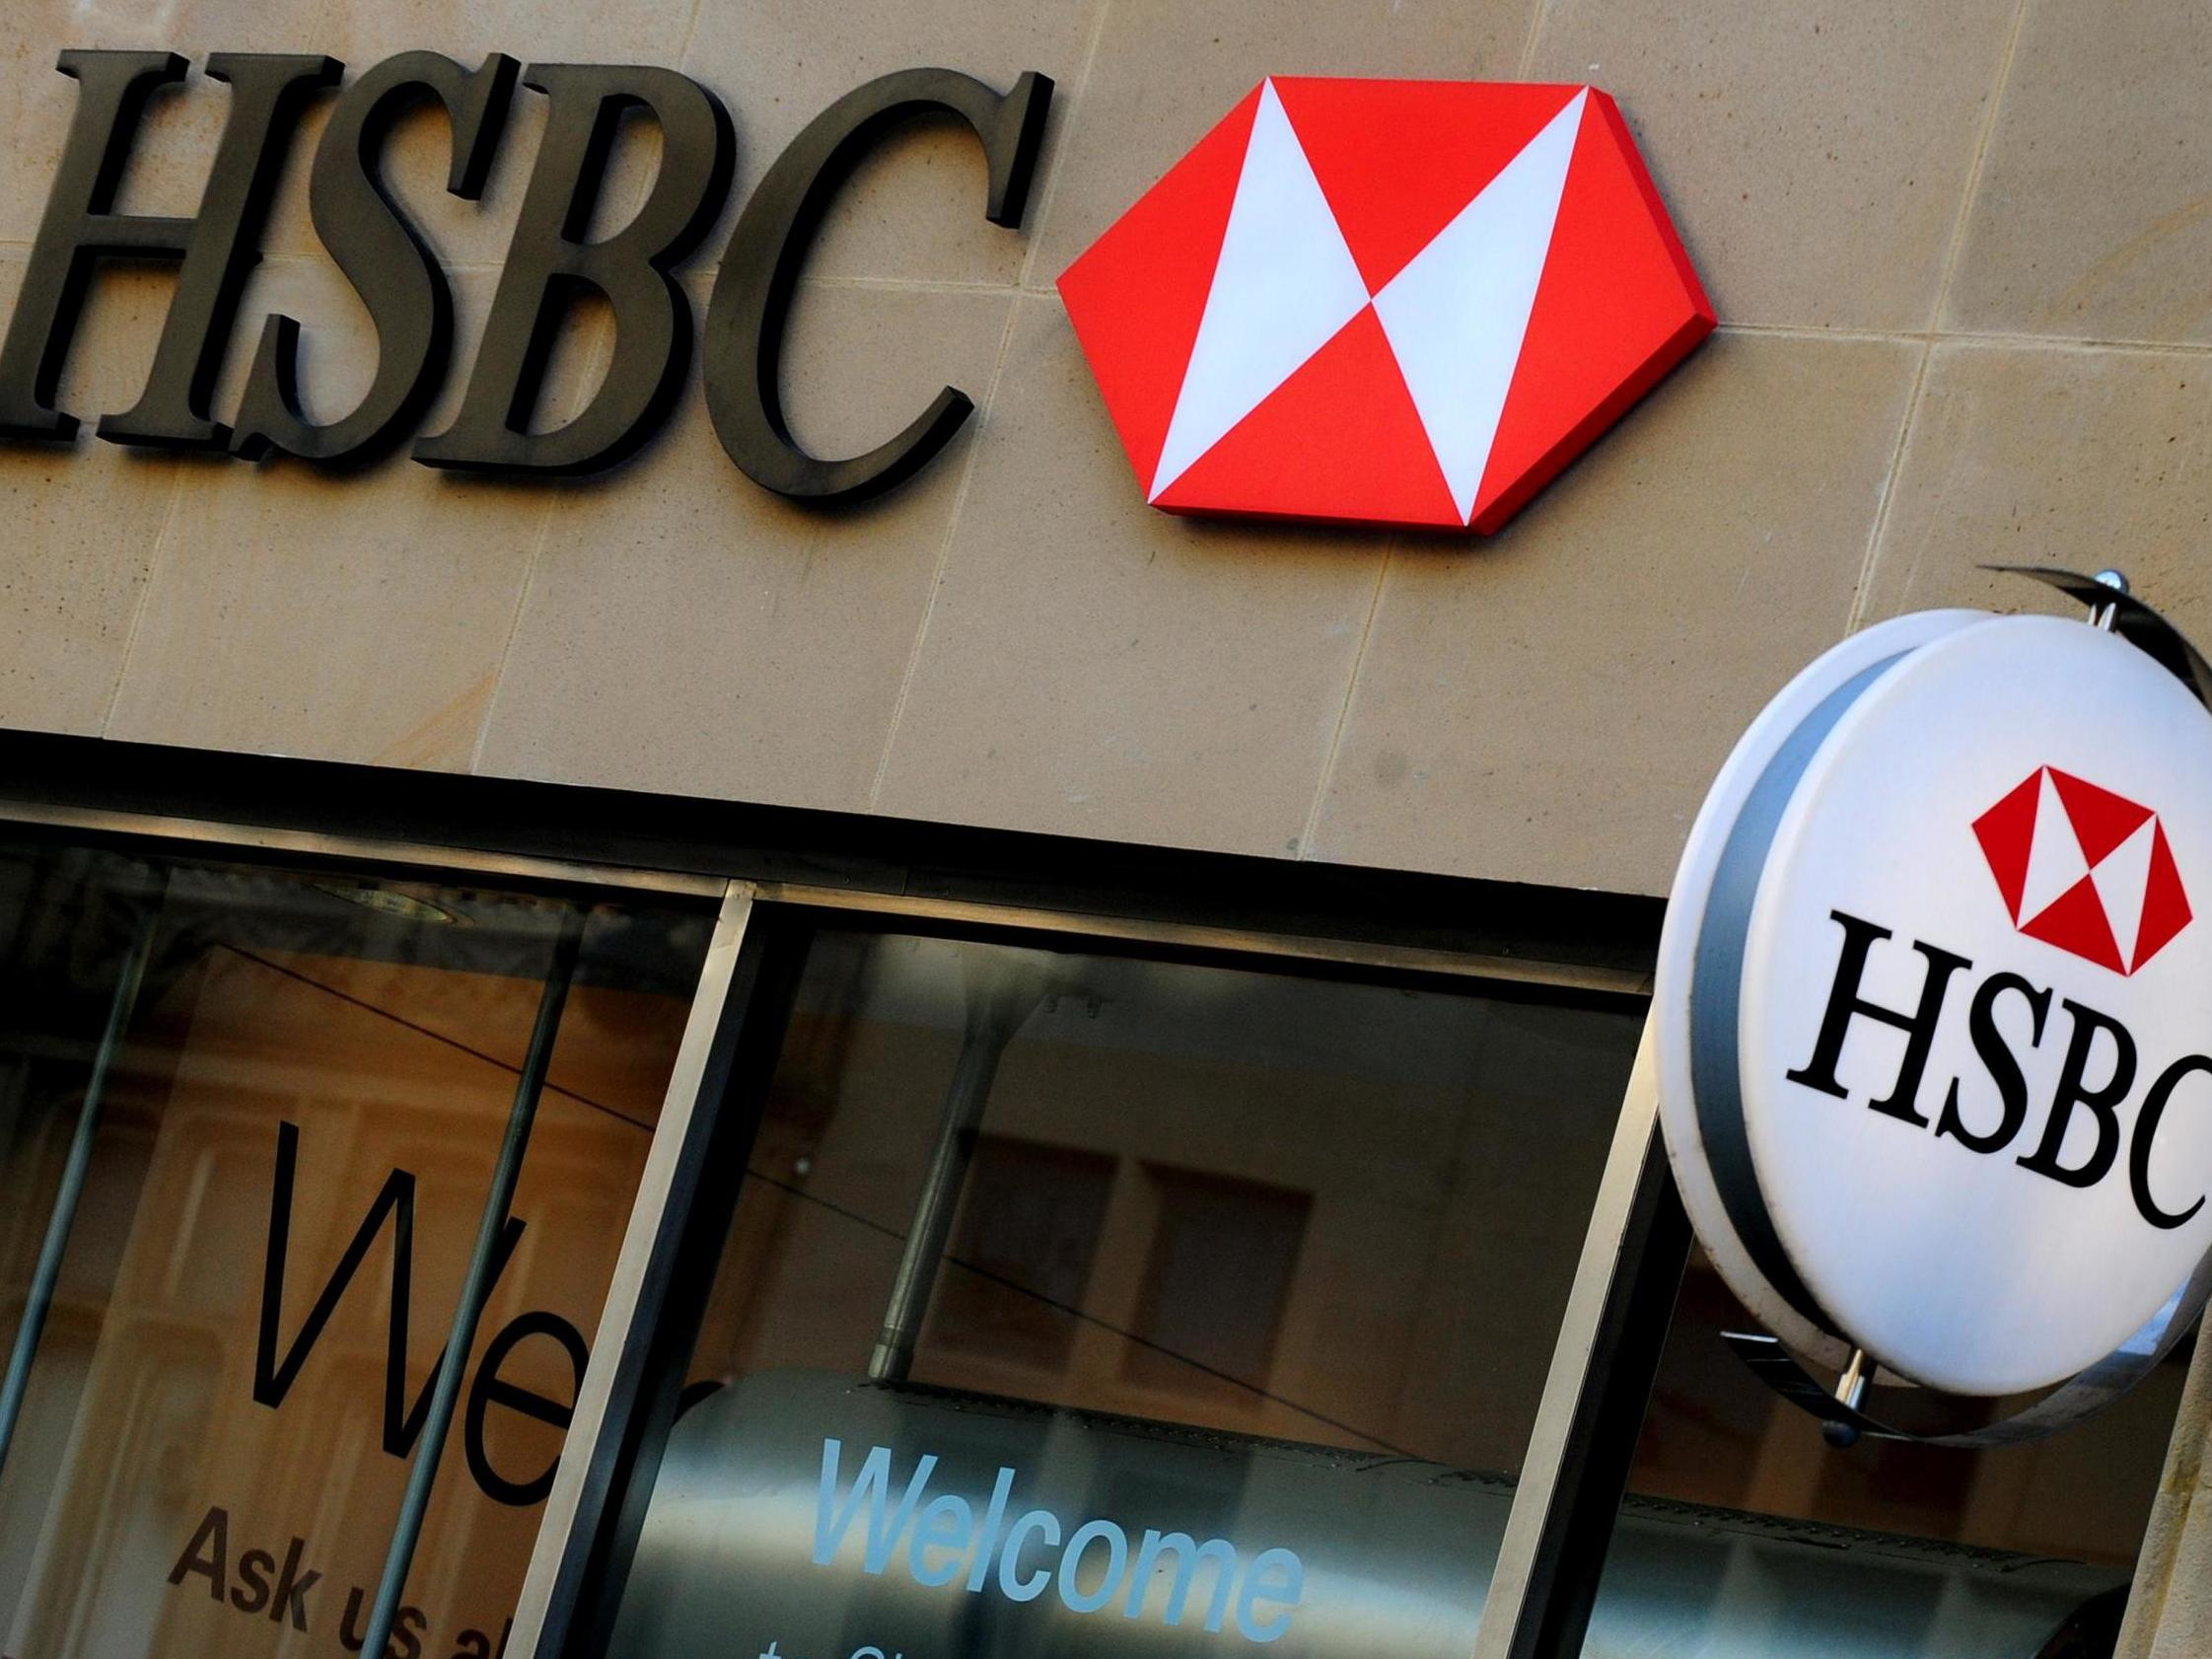 HSBC announces 4,000 job cuts after abruptly axing CEO John